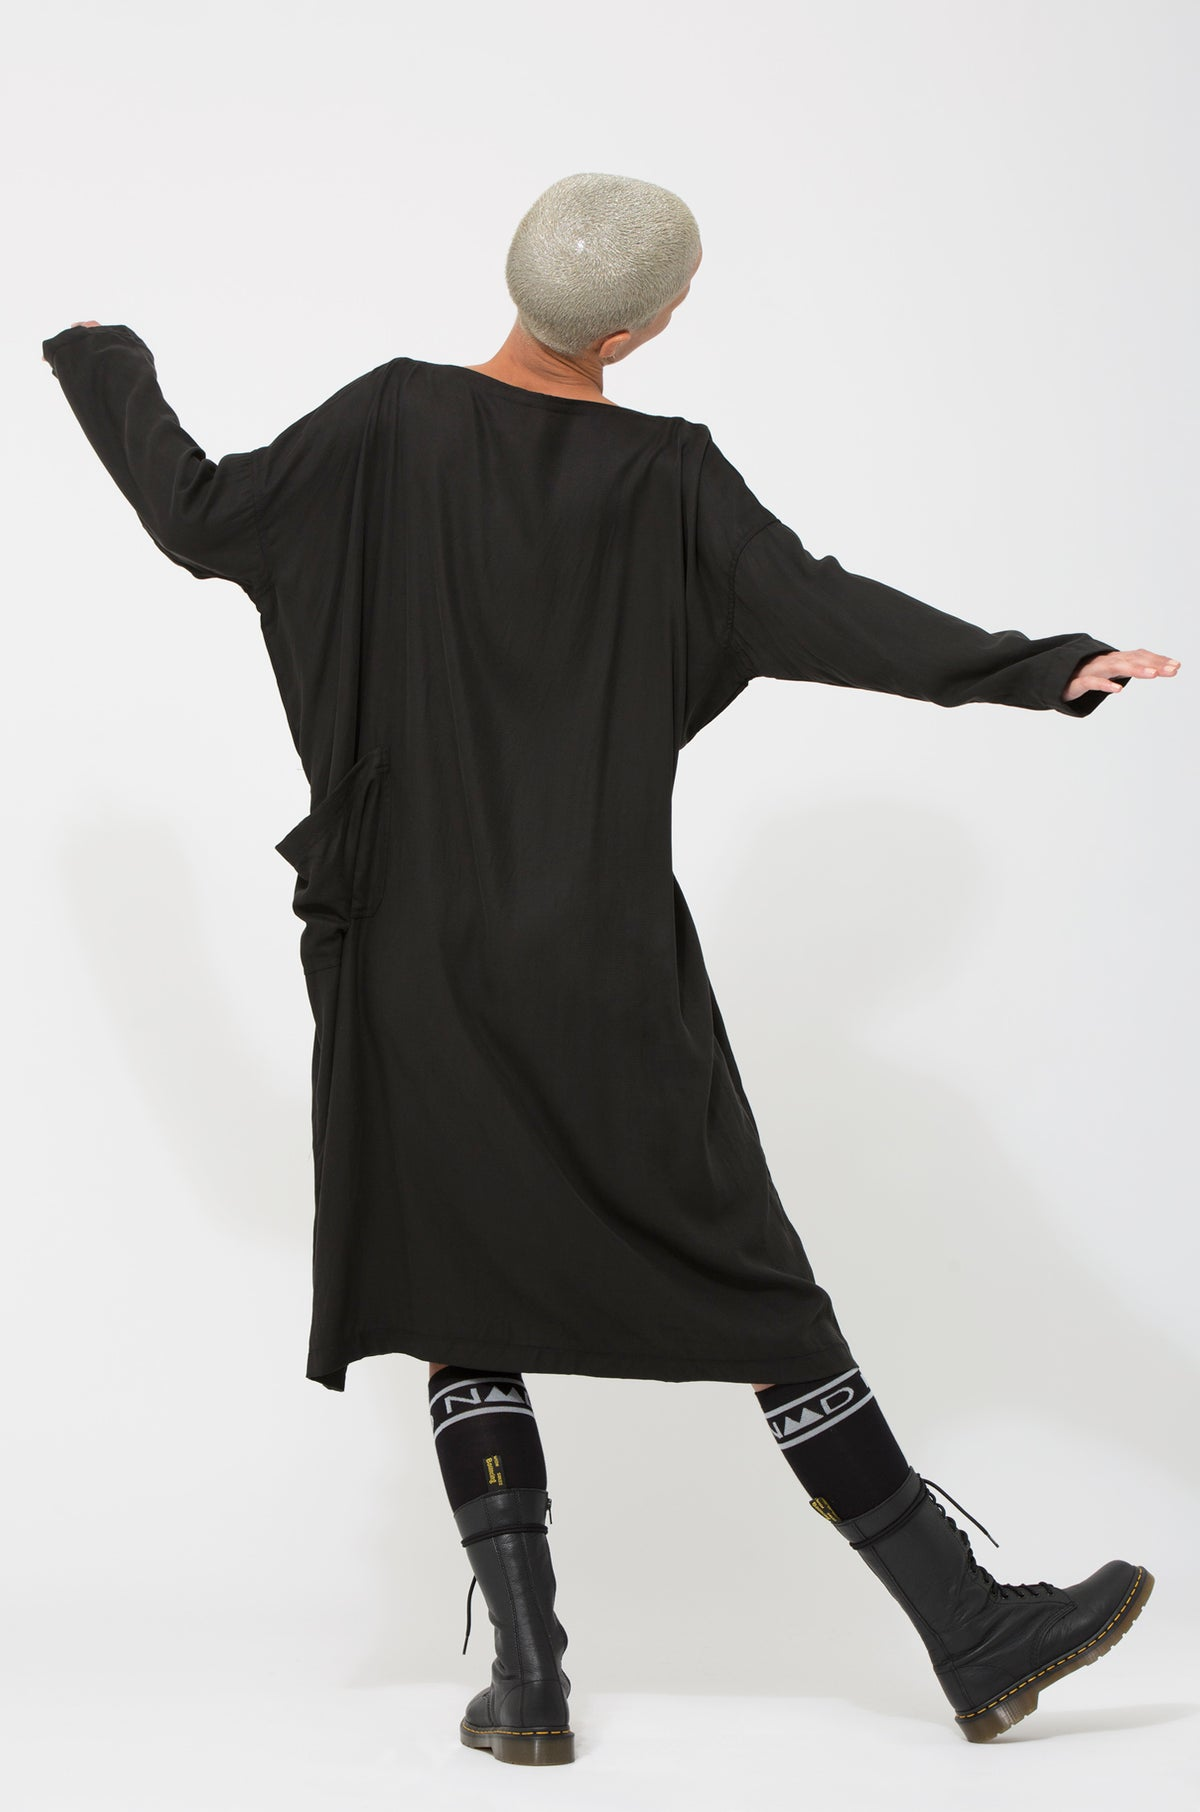 Nom*d Cordon Dress Black Shop Online Made in new Zealand NZ Designer Clothing Stockists Auckland Shop Online Parnell Nom d Nomd Dunedin Fashion